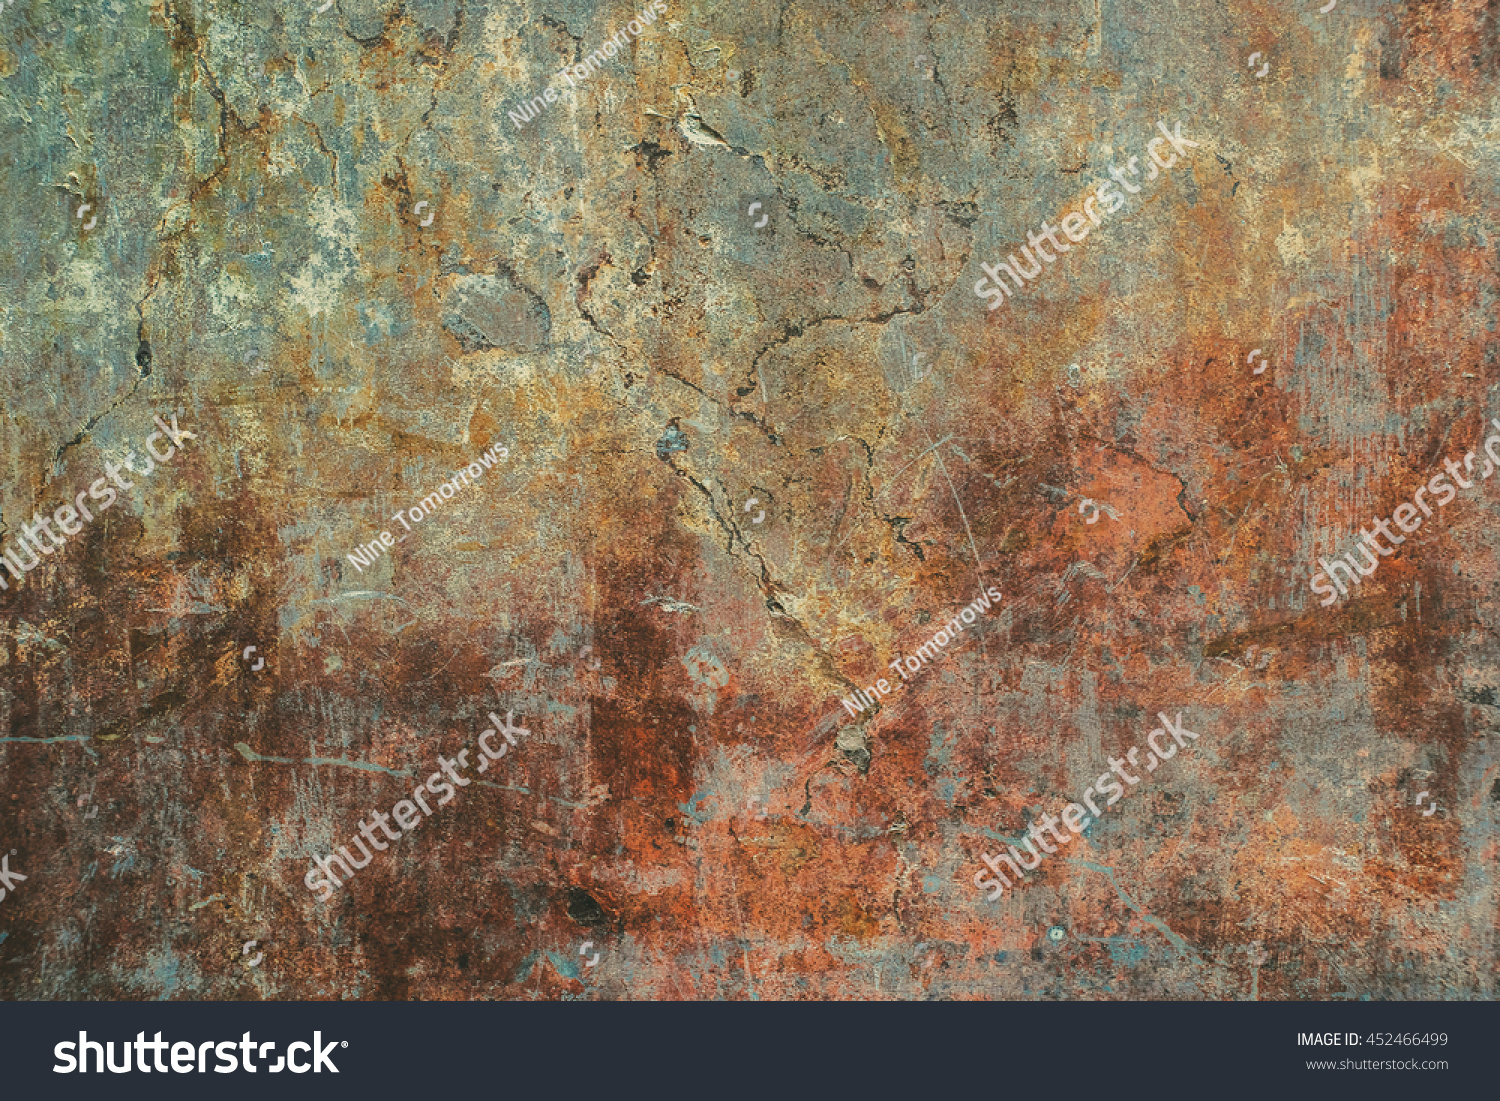 Dark cracked rusty worn aged concrete texture  Tiled  Seamless tiled  concrete wallpaper  For. Dark Cracked Rusty Worn Aged Concrete Stock Photo 452466499